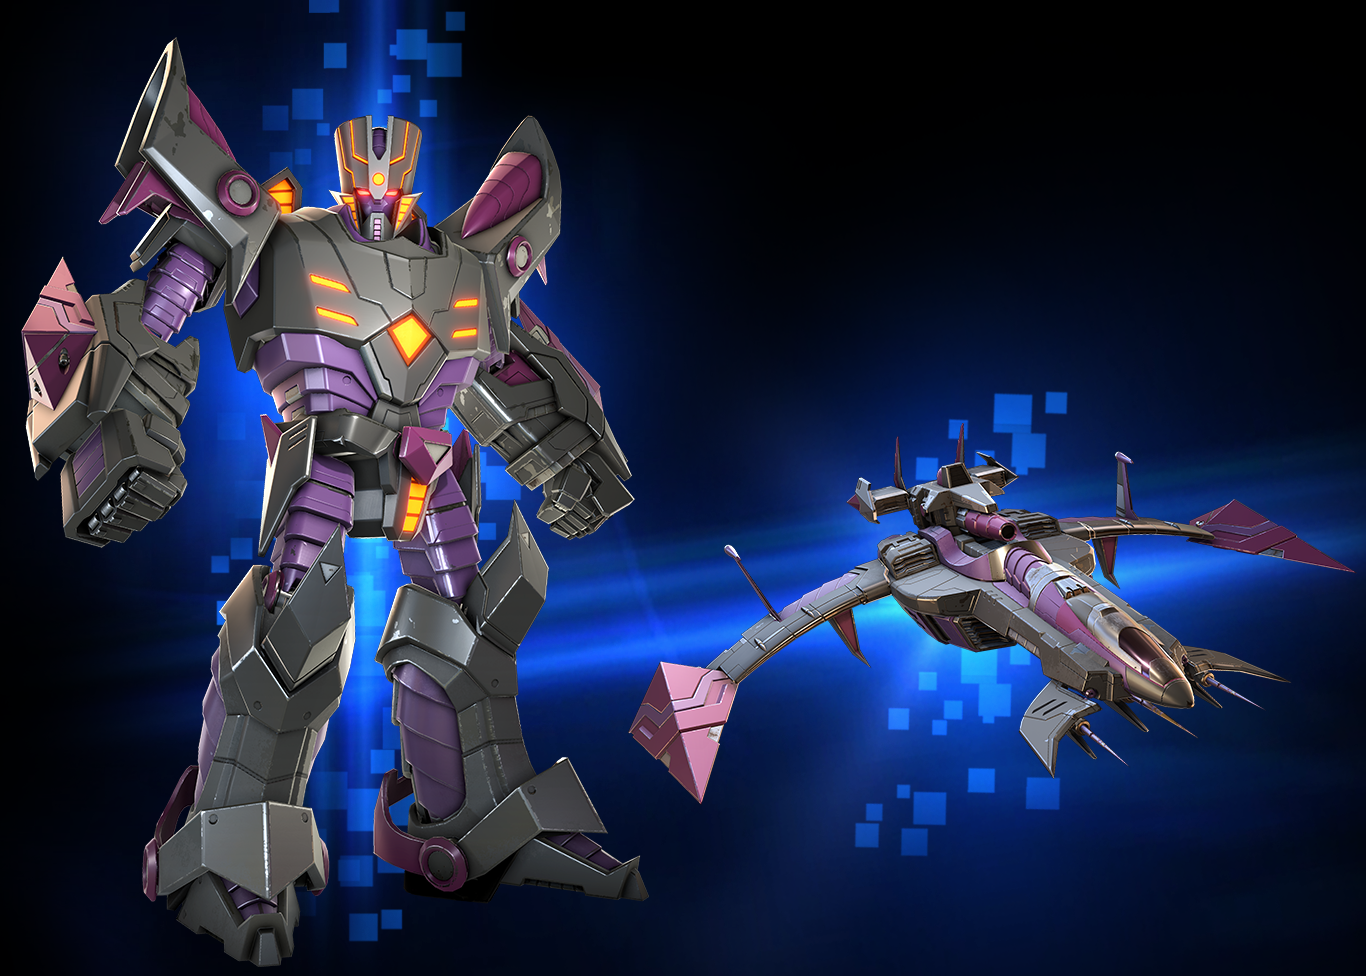 Design Squad Website >> Megatronus Joins Transformers: Forged To Fight - Transformers News - TFW2005